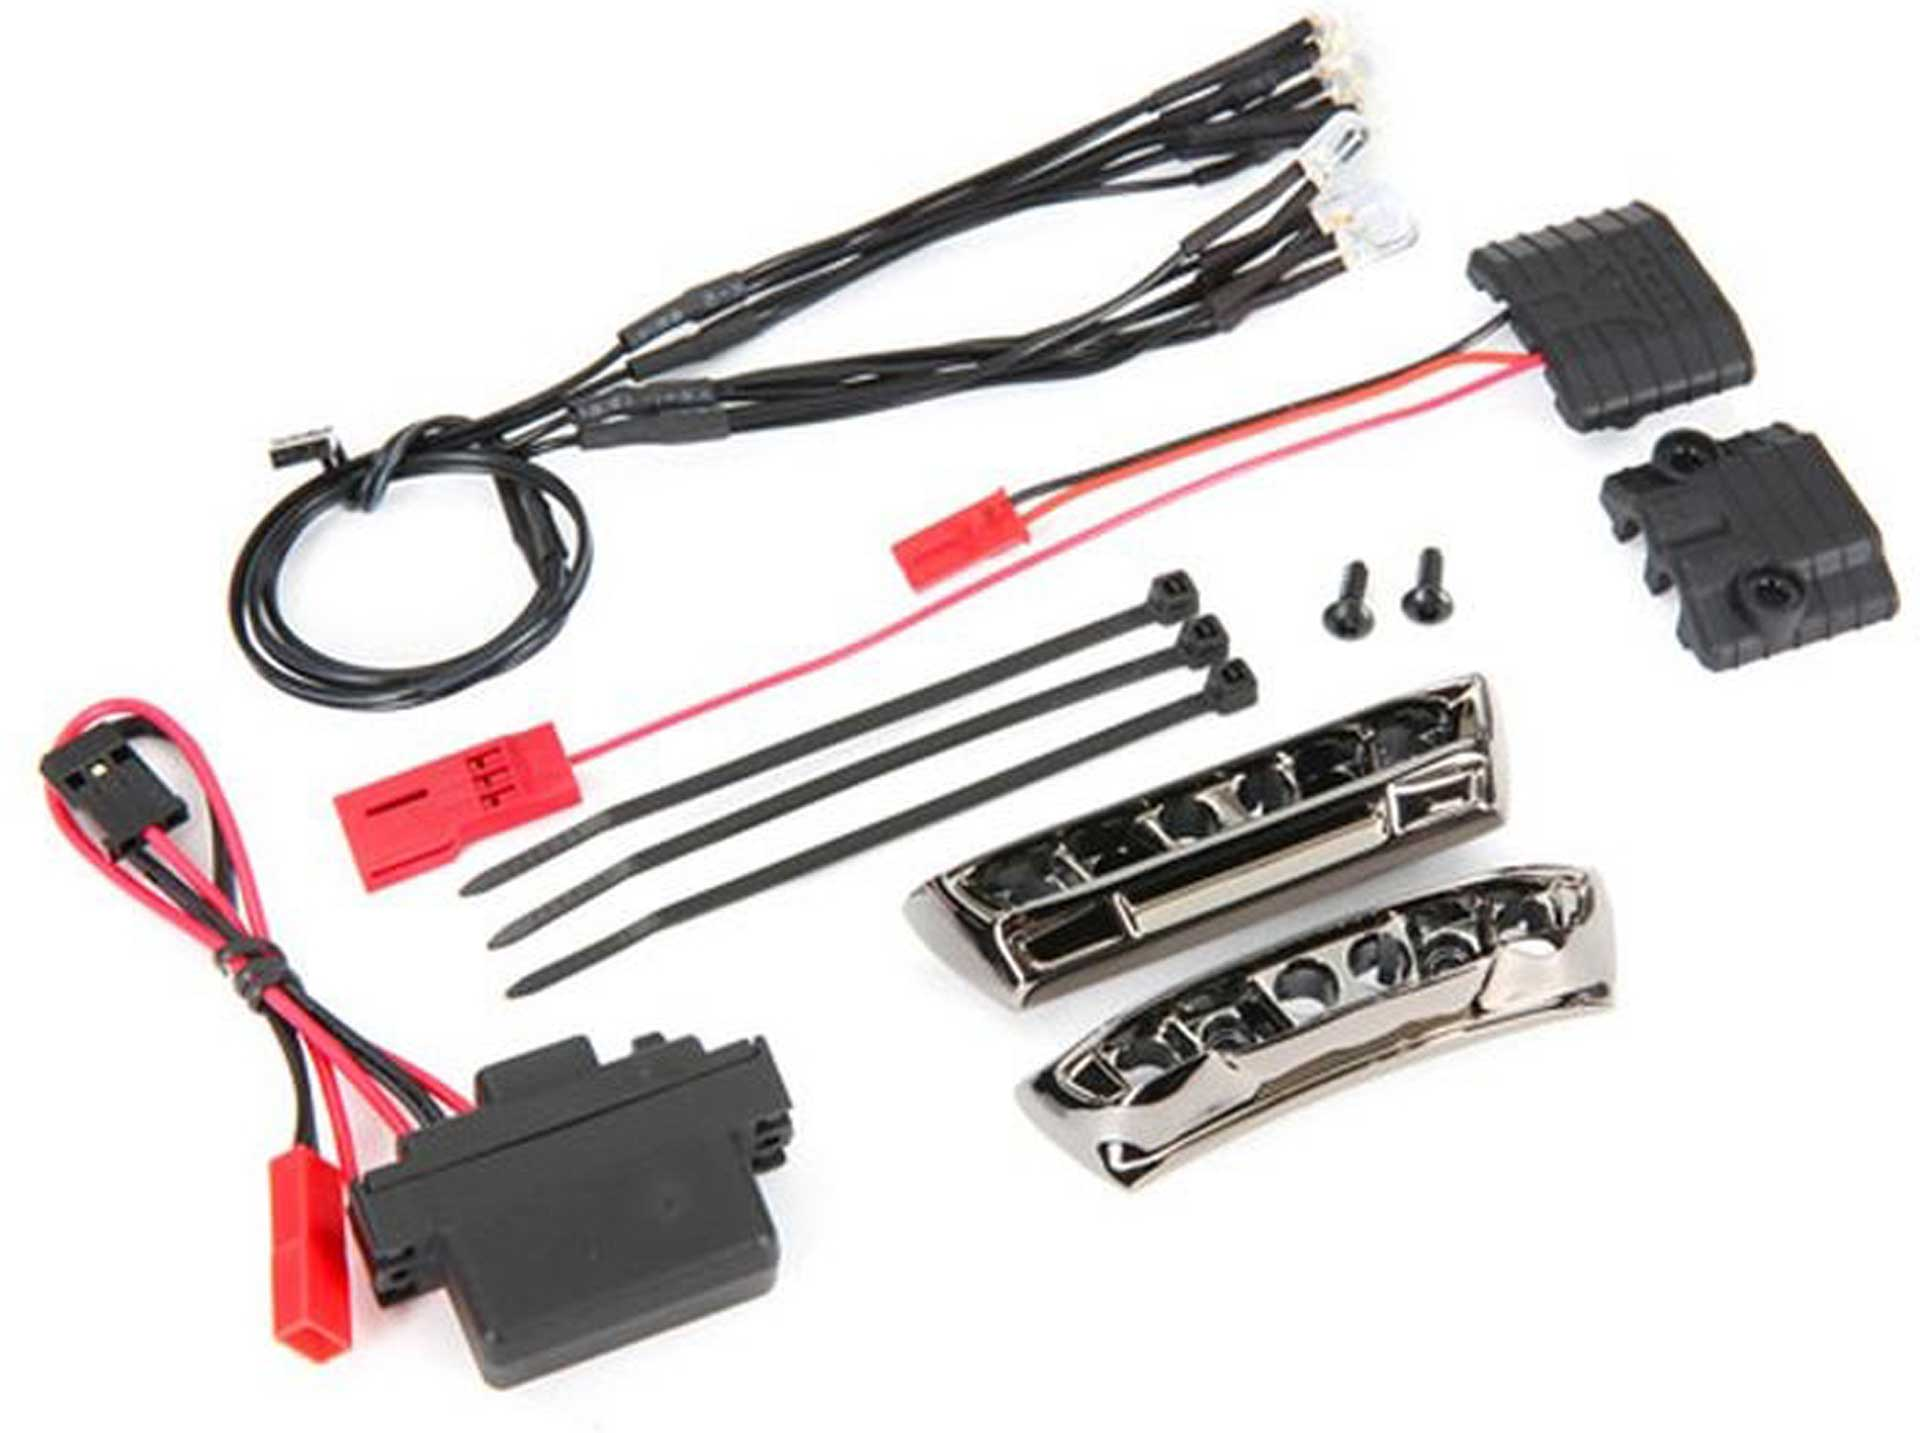 TRAXXAS LED LIGHT KIT COMPLETE E-REVO 1/16